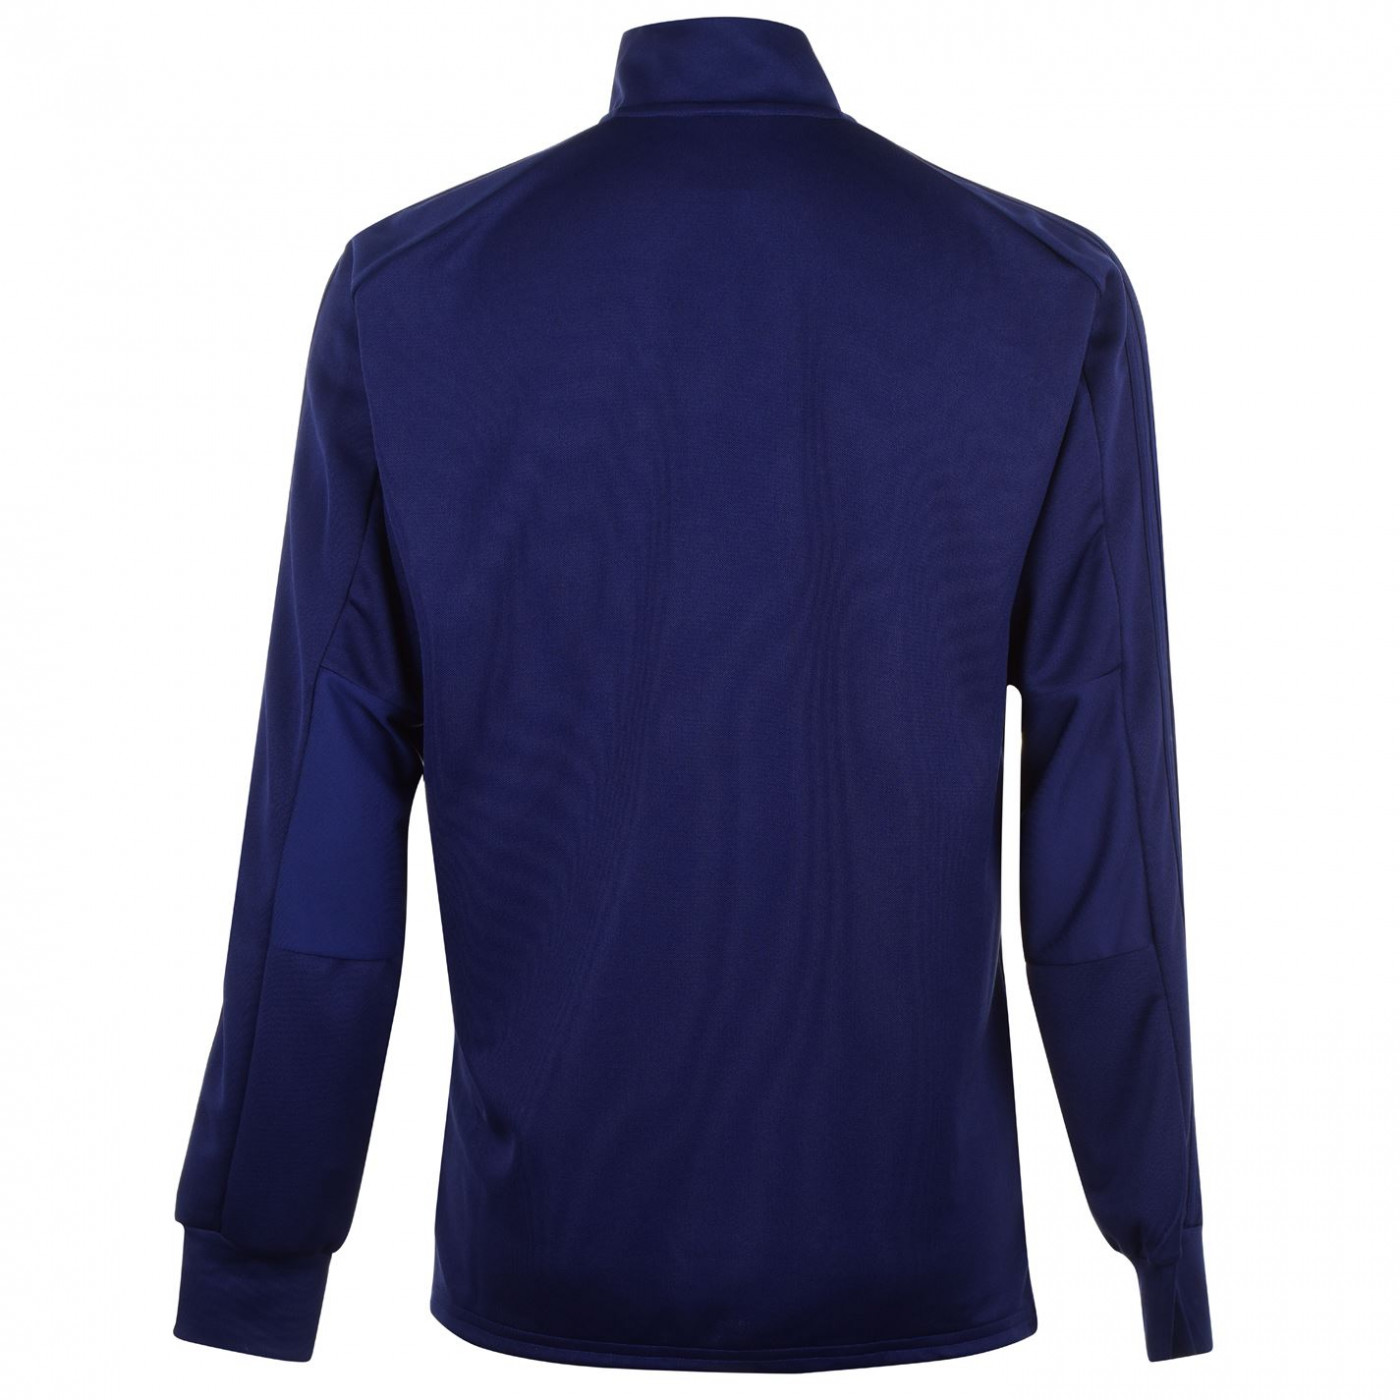 Adidas Condivo Top Mens